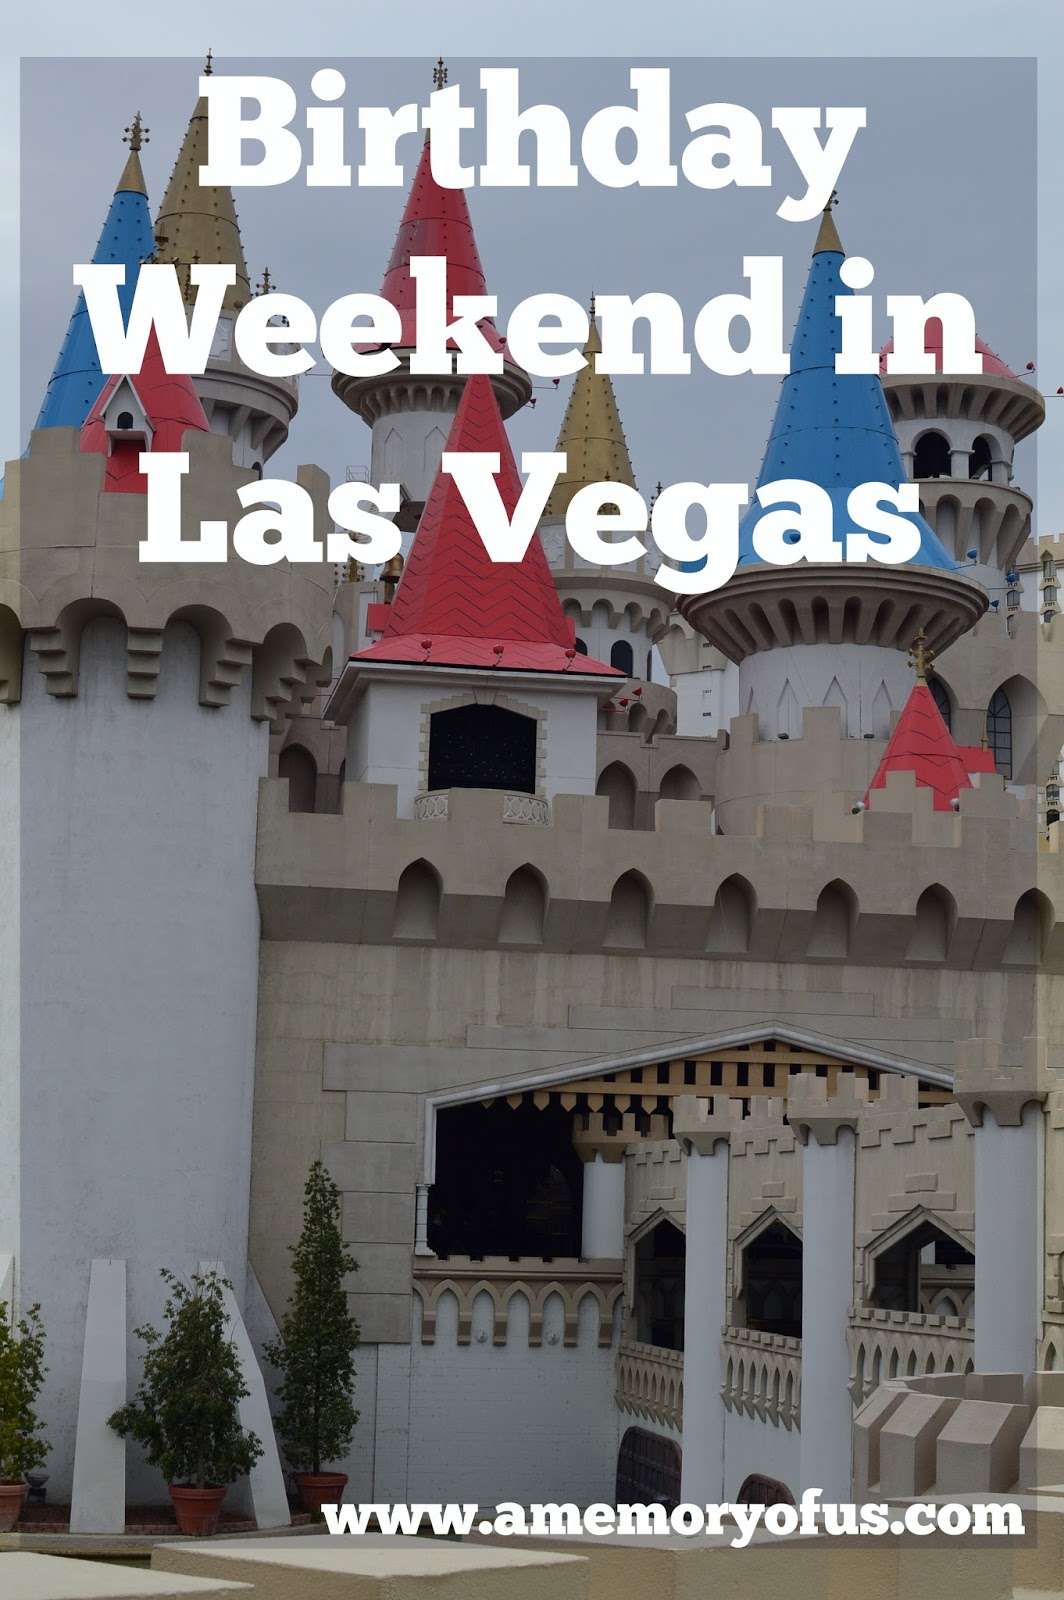 my birthday weekend in las vegas